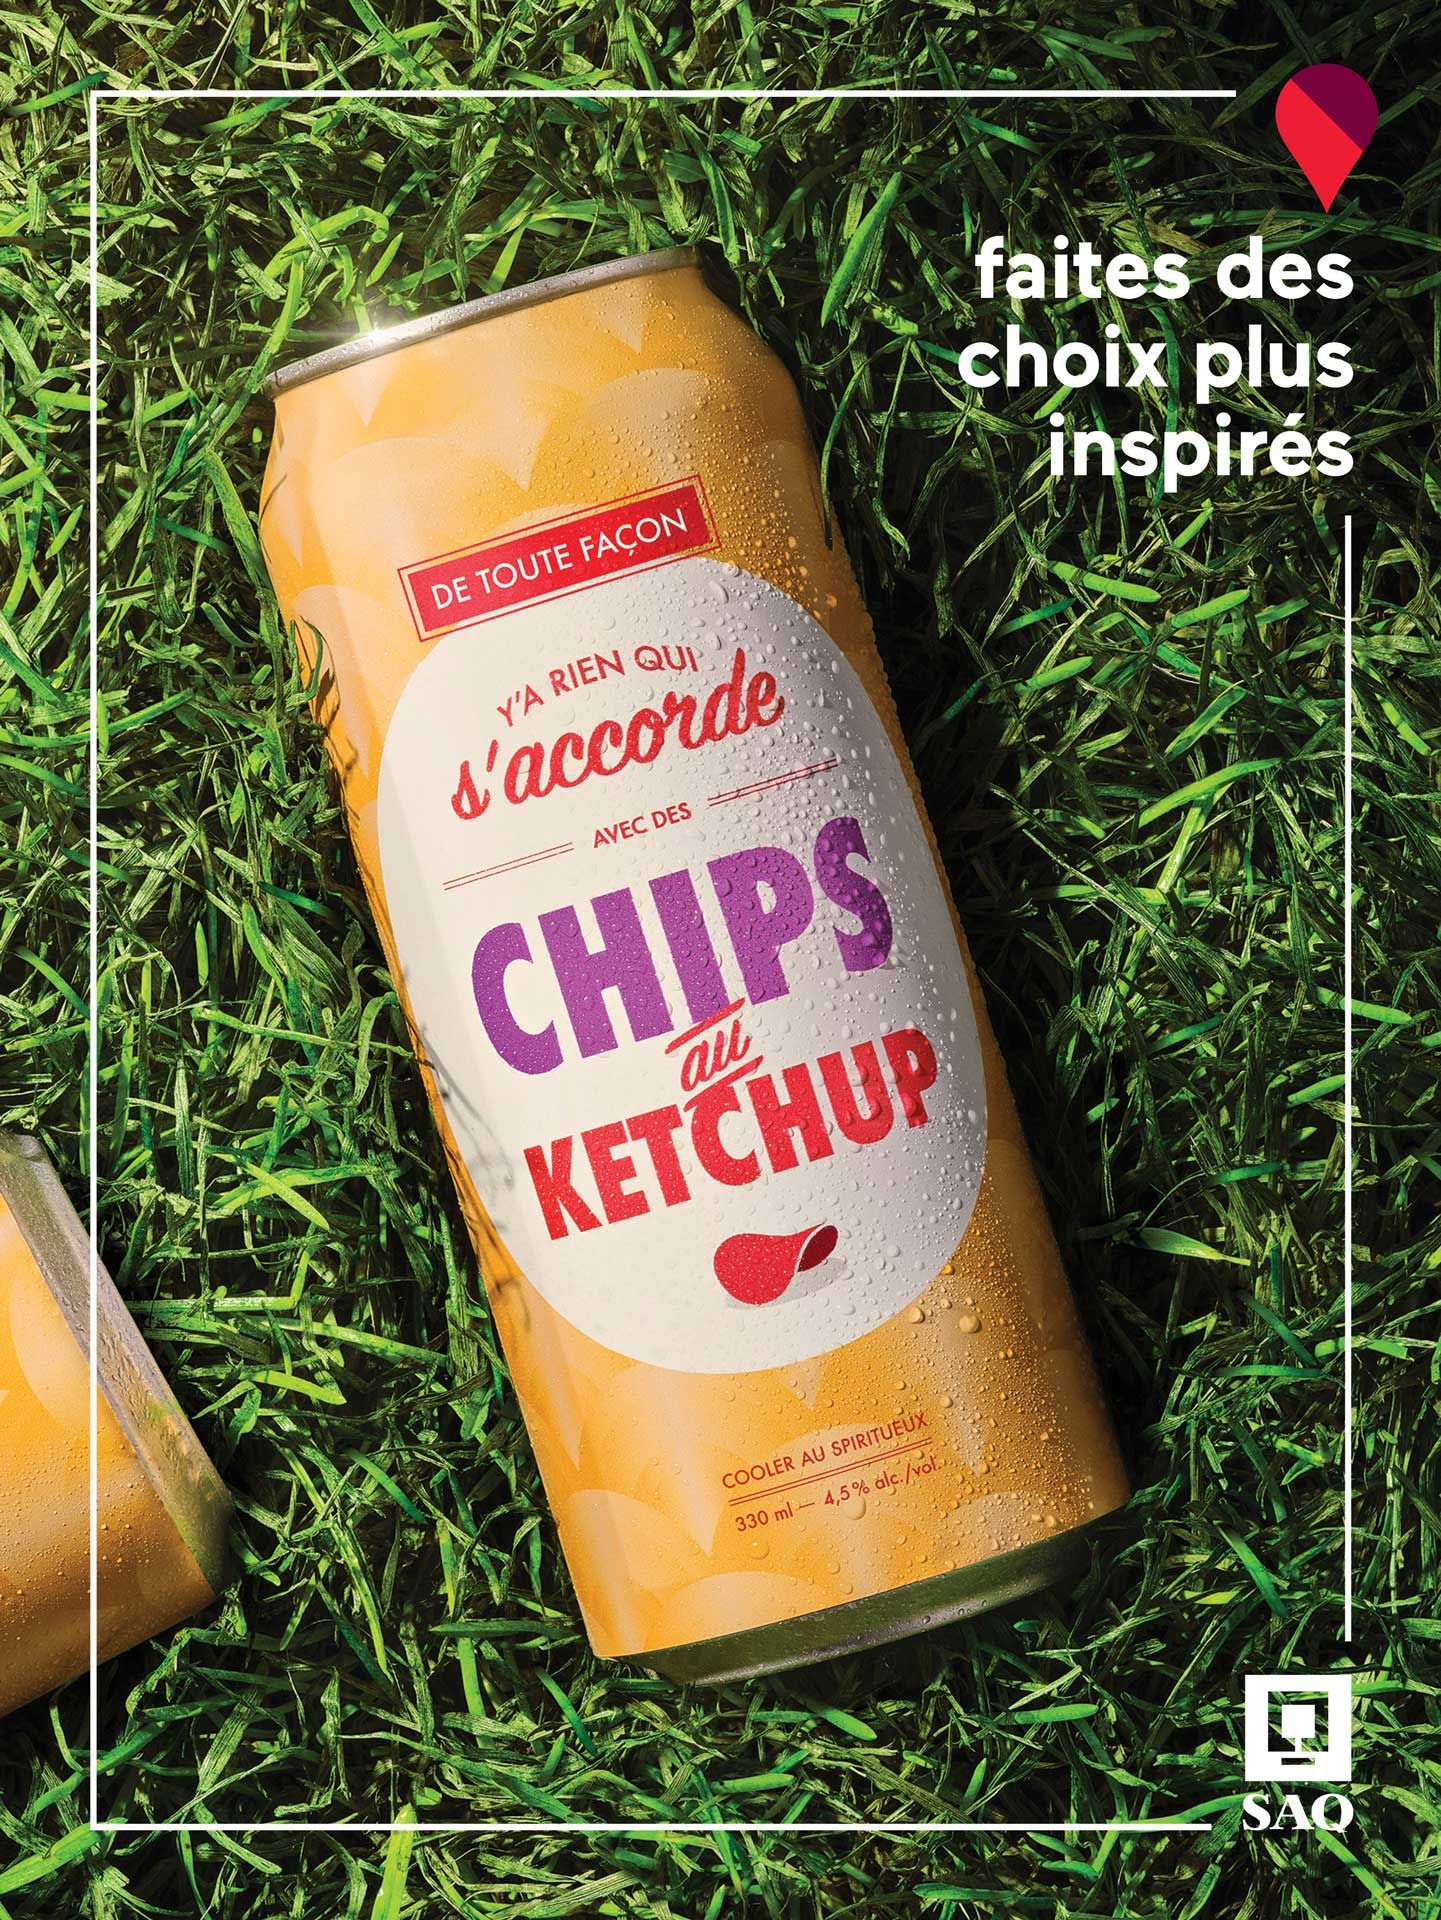 alcohol in can on grass photographed by Mathieu Levesque for the SAQ Make Inspired Choices campaign